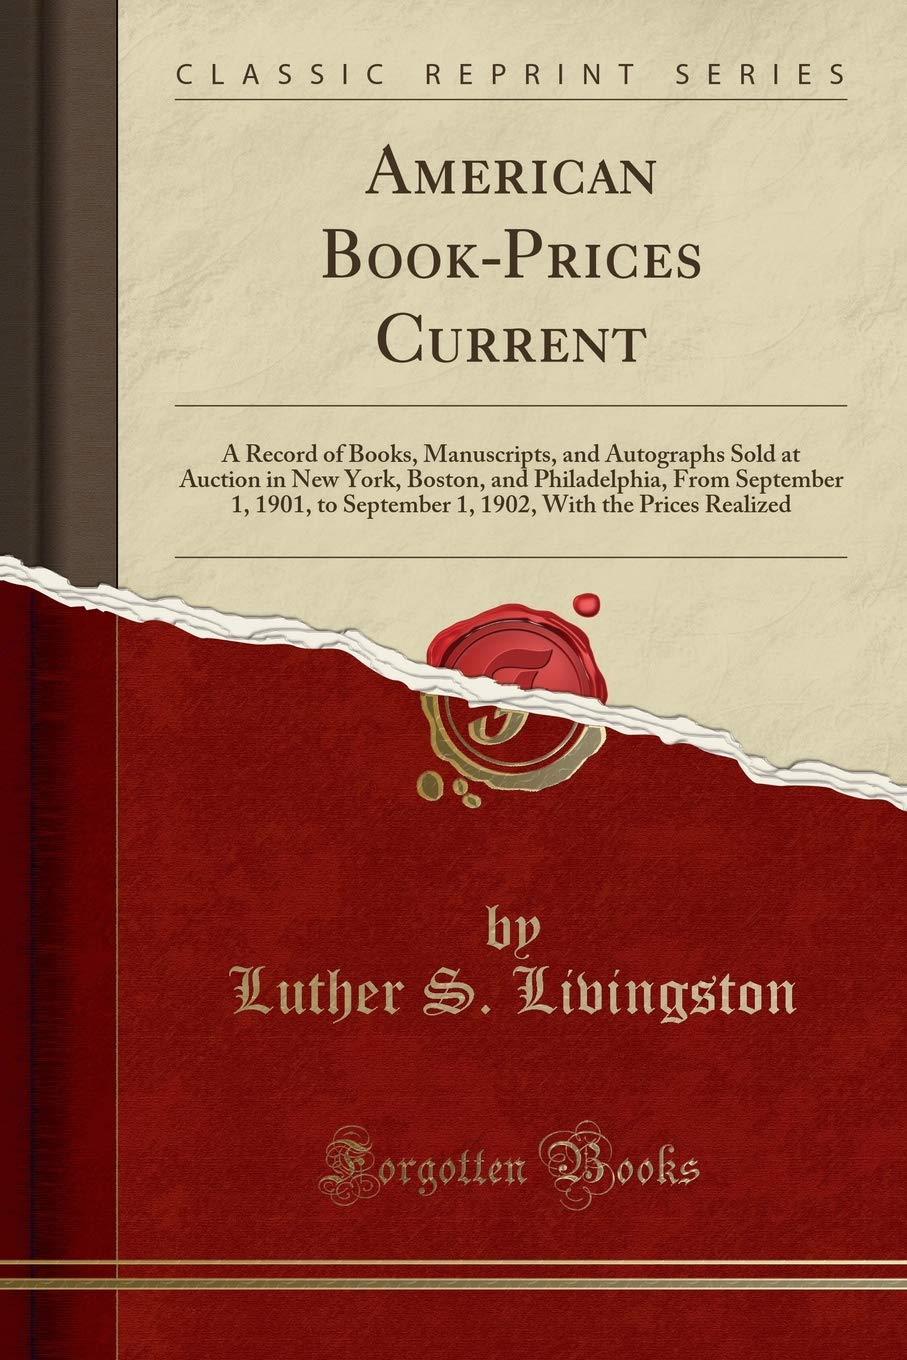 Read Online American Book-Prices Current: A Record of Books, Manuscripts, and Autographs Sold at Auction in New York, Boston, and Philadelphia, From September 1, ... With the Prices Realized (Classic Reprint) pdf epub